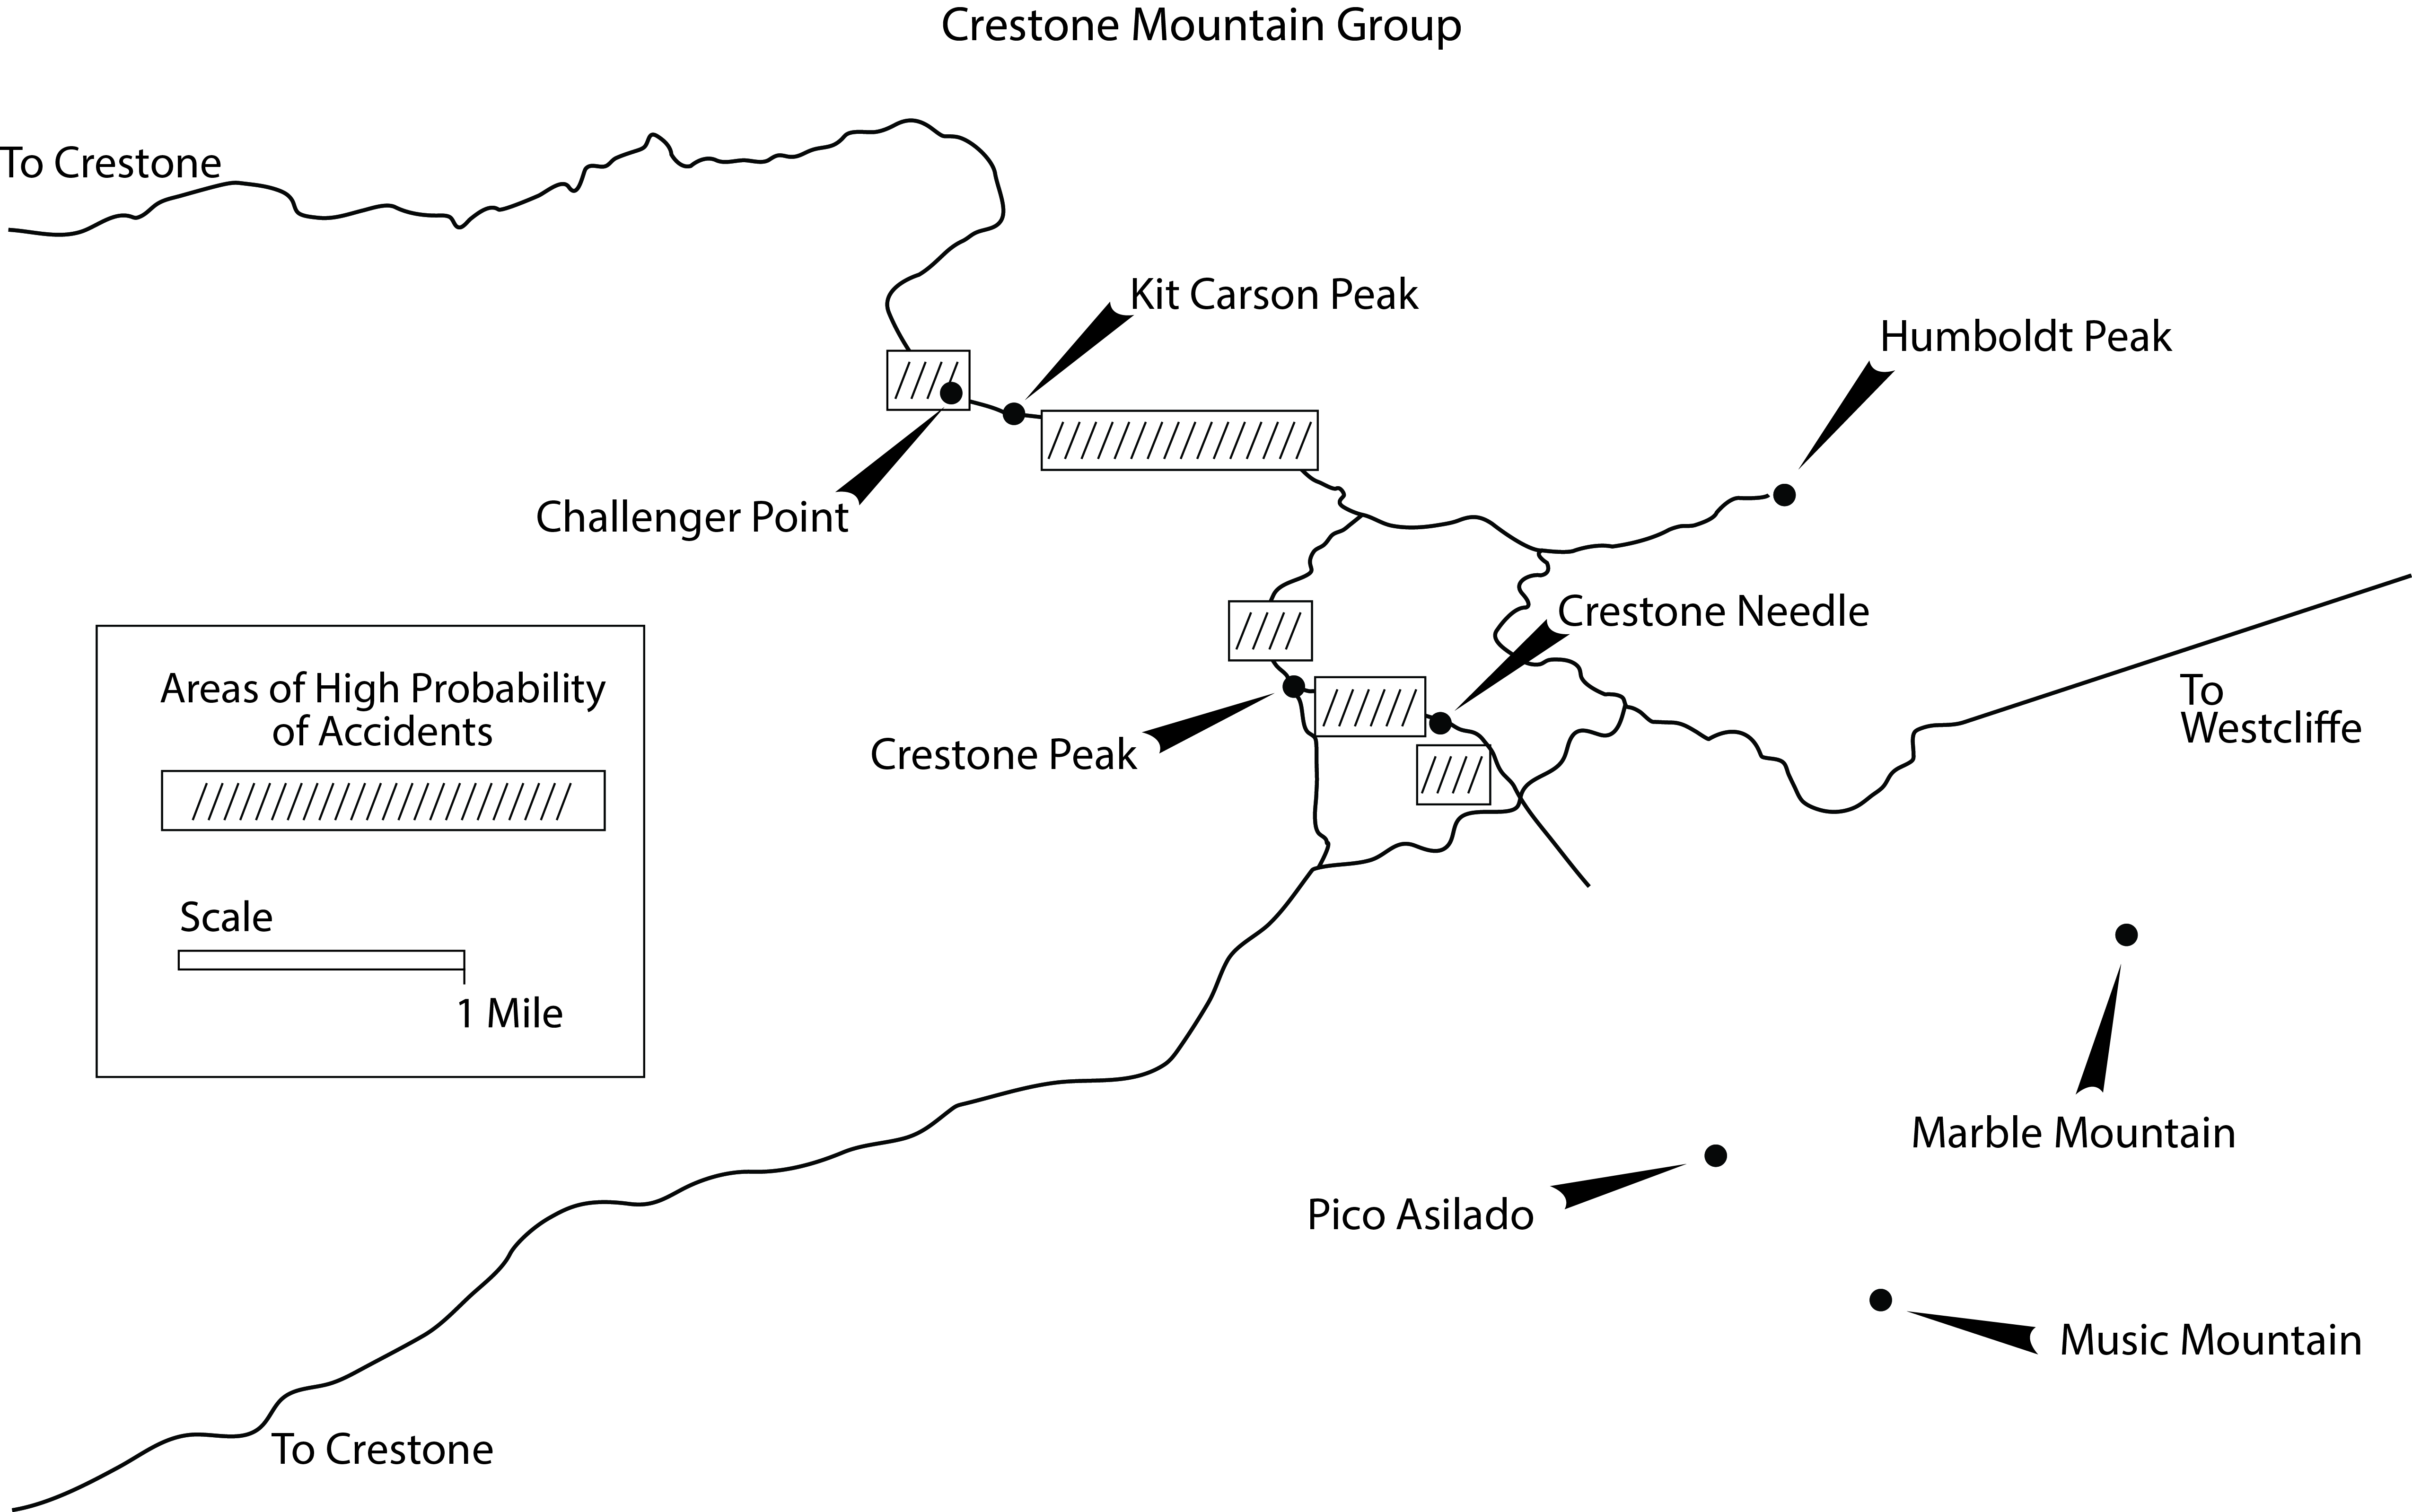 Map of the Crestone Mountain Group